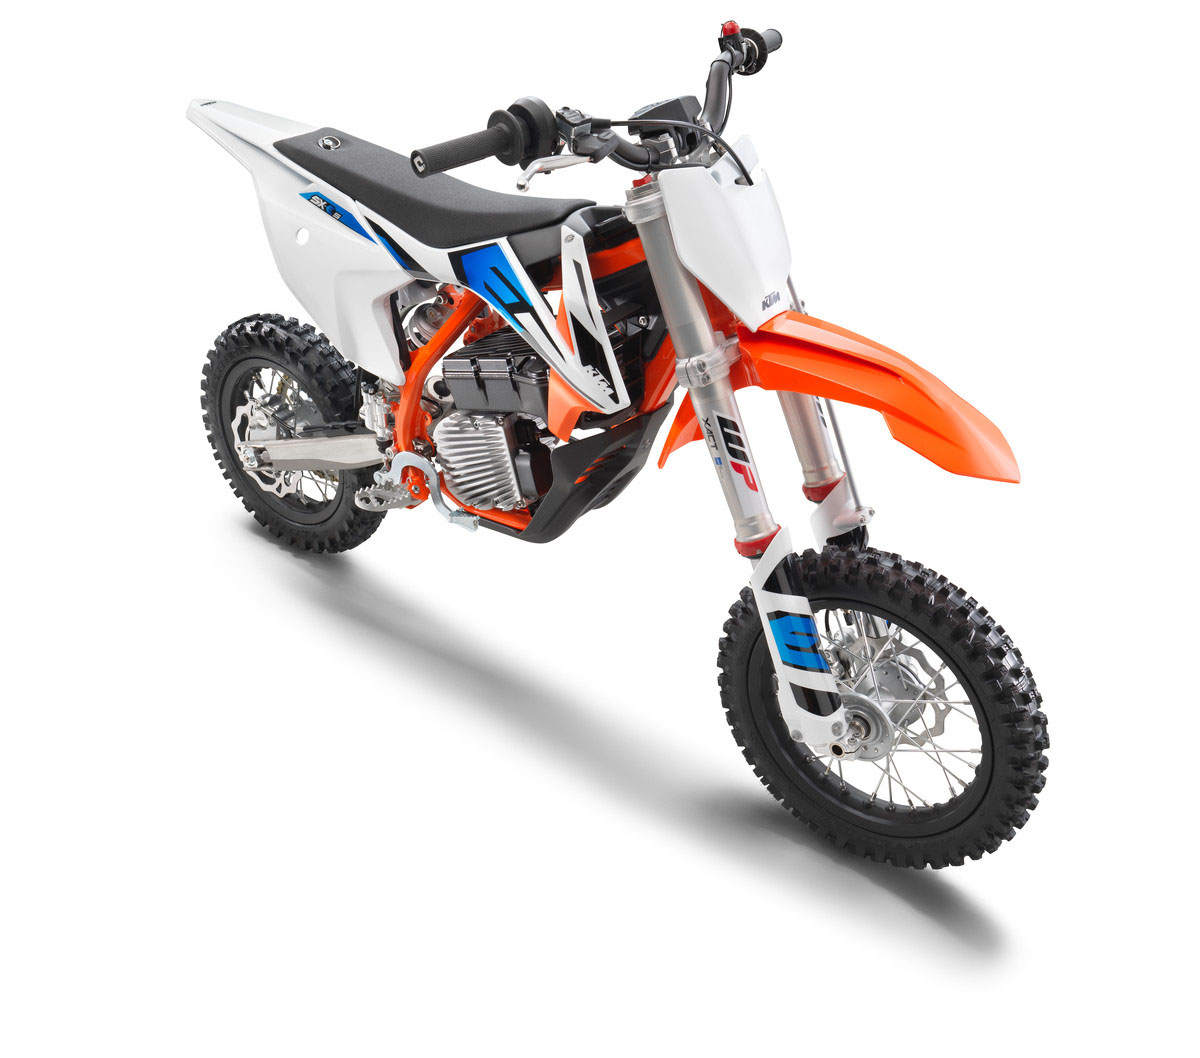 2020 Ktm Sx E 5 First Look At The Future